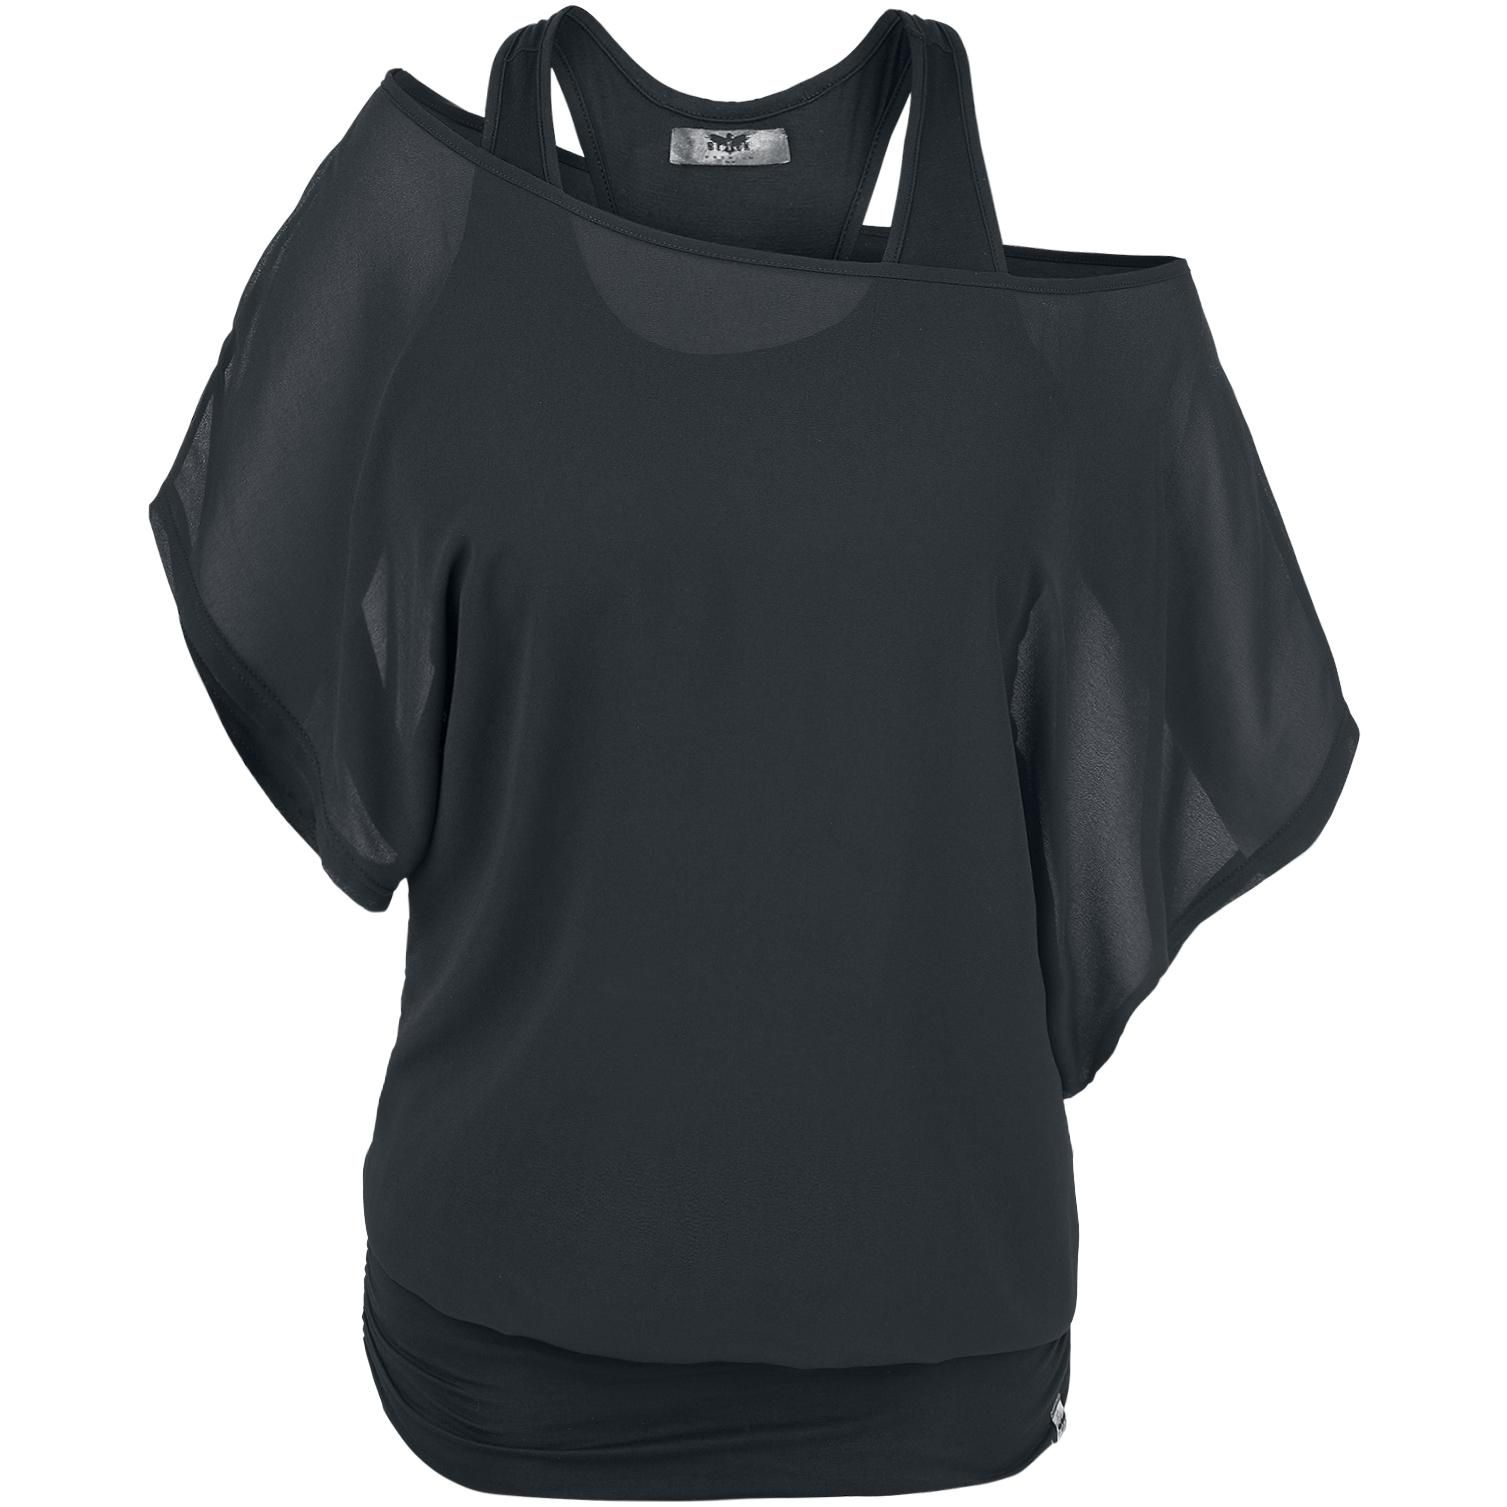 Bat Shirt Double Layer Look Wide Cleavage With By Black Premium Emp A Neckline And Gathered Hem On The Side